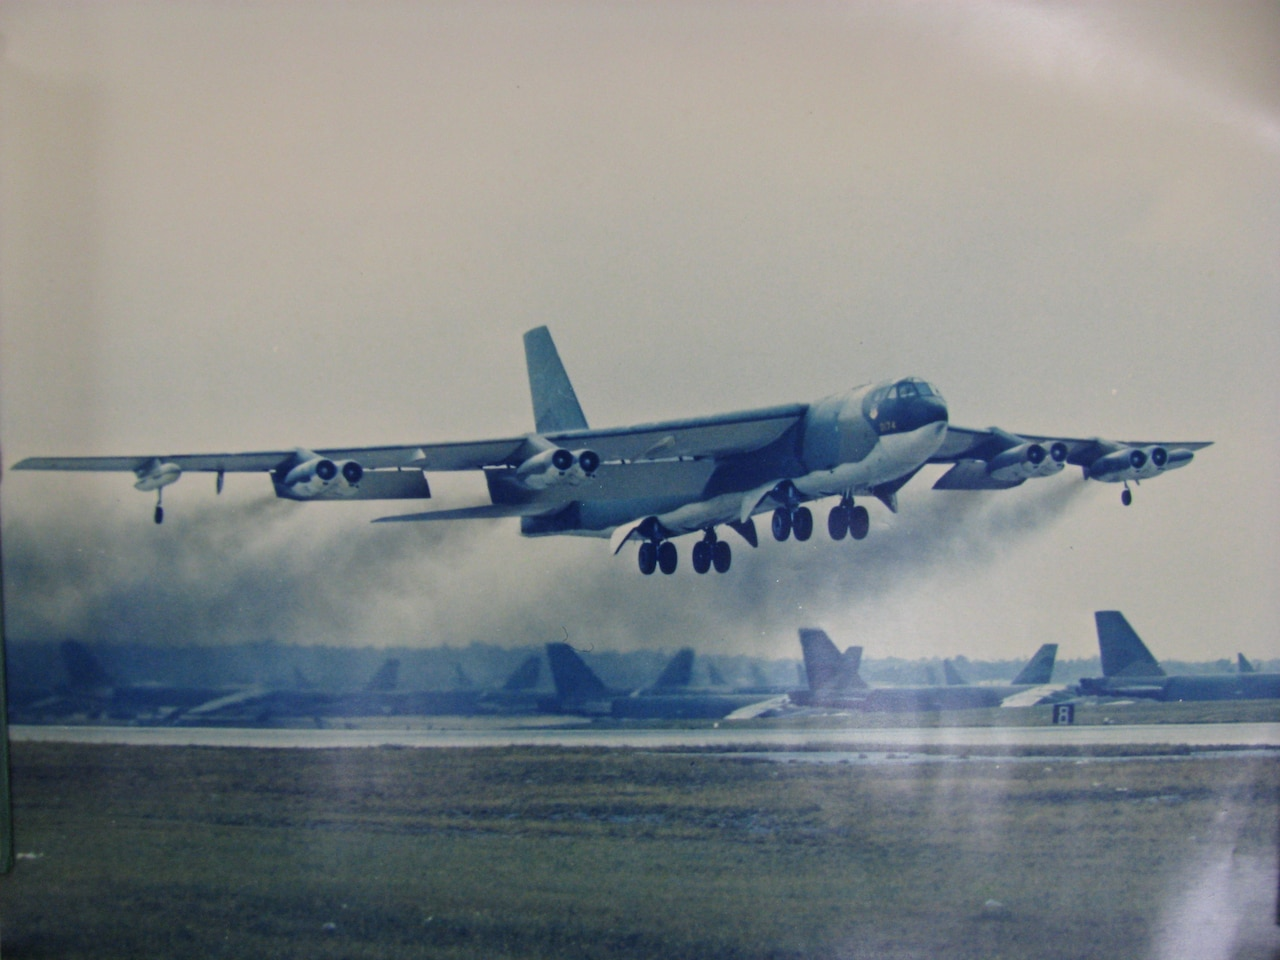 A B-52 Stratofortress bomber takes off from a runway.